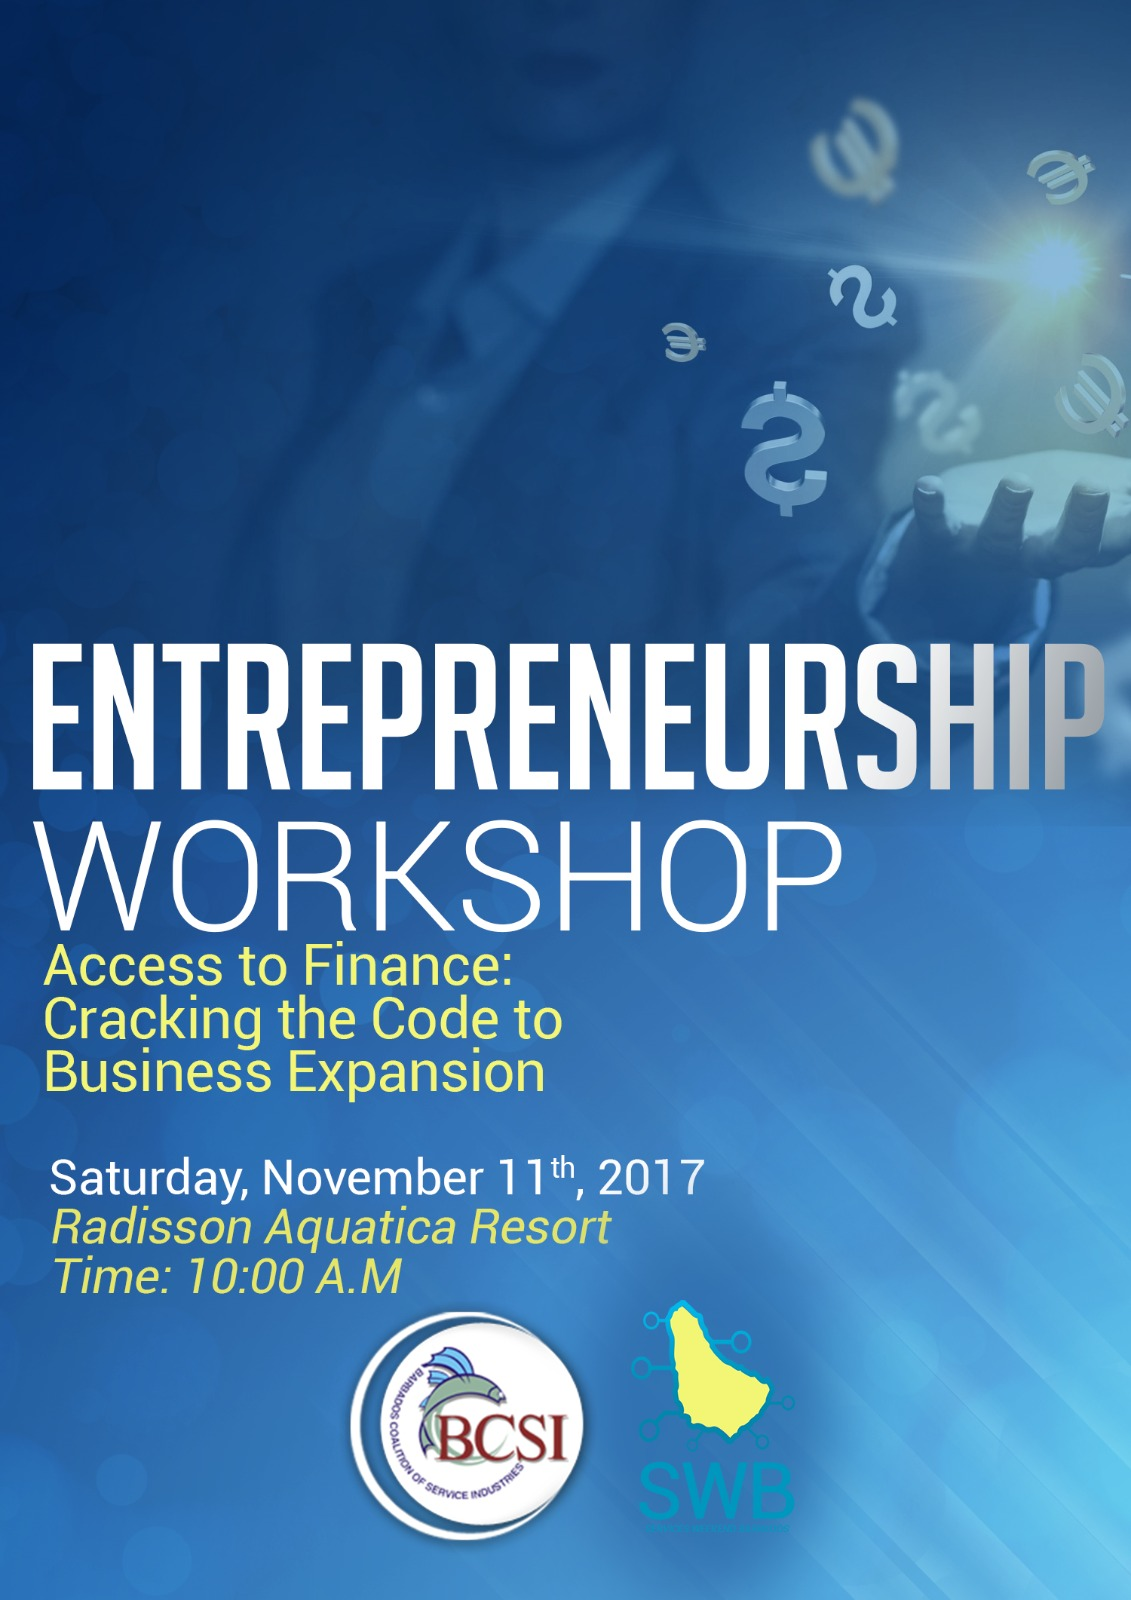 Registration for Services Weekend Barbados (Entrepreneurship Forum)